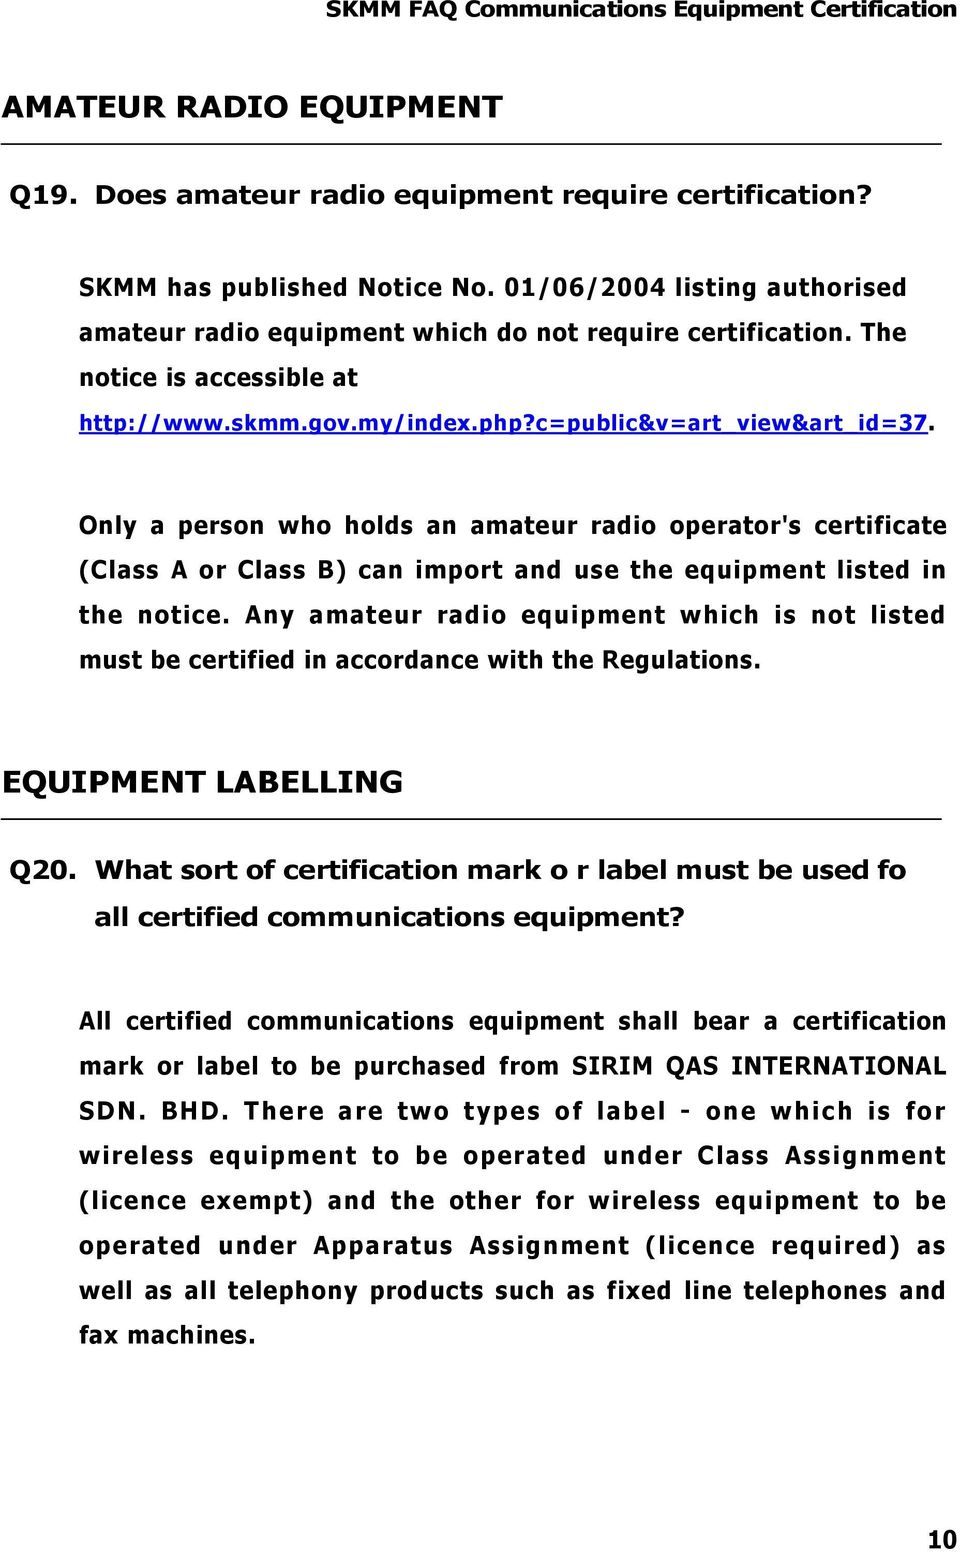 Only a person who holds an amateur radio operator's certificate (Class A or Class B) can import and use the equipment listed in the notice.